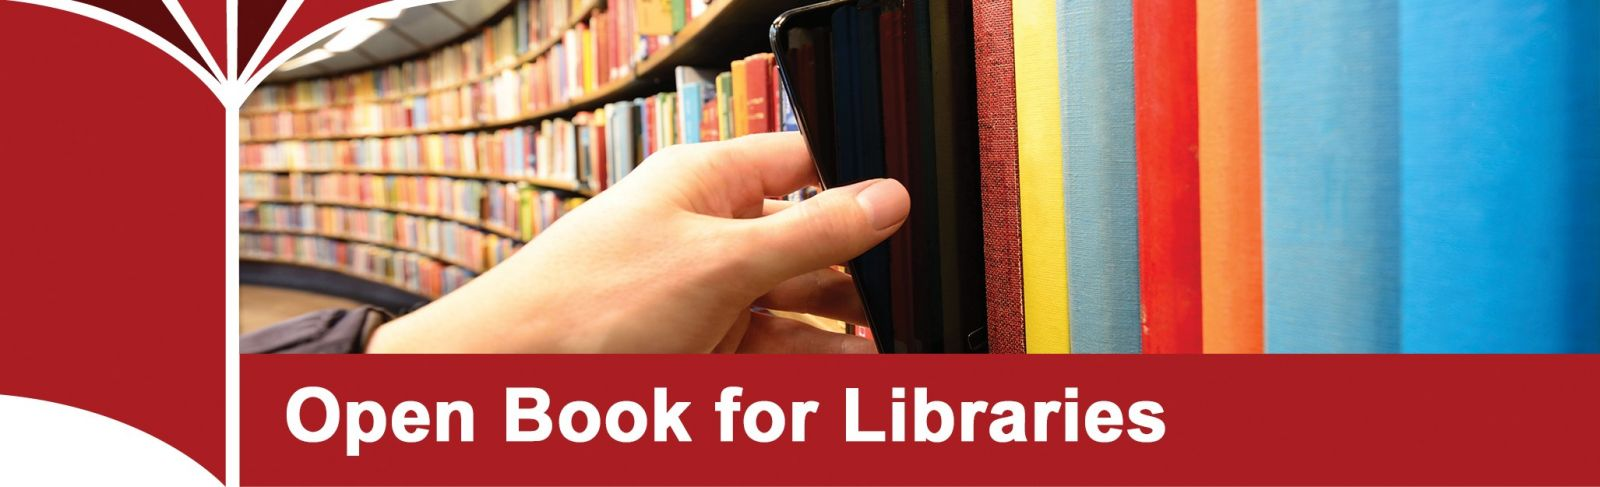 Open book for libraries